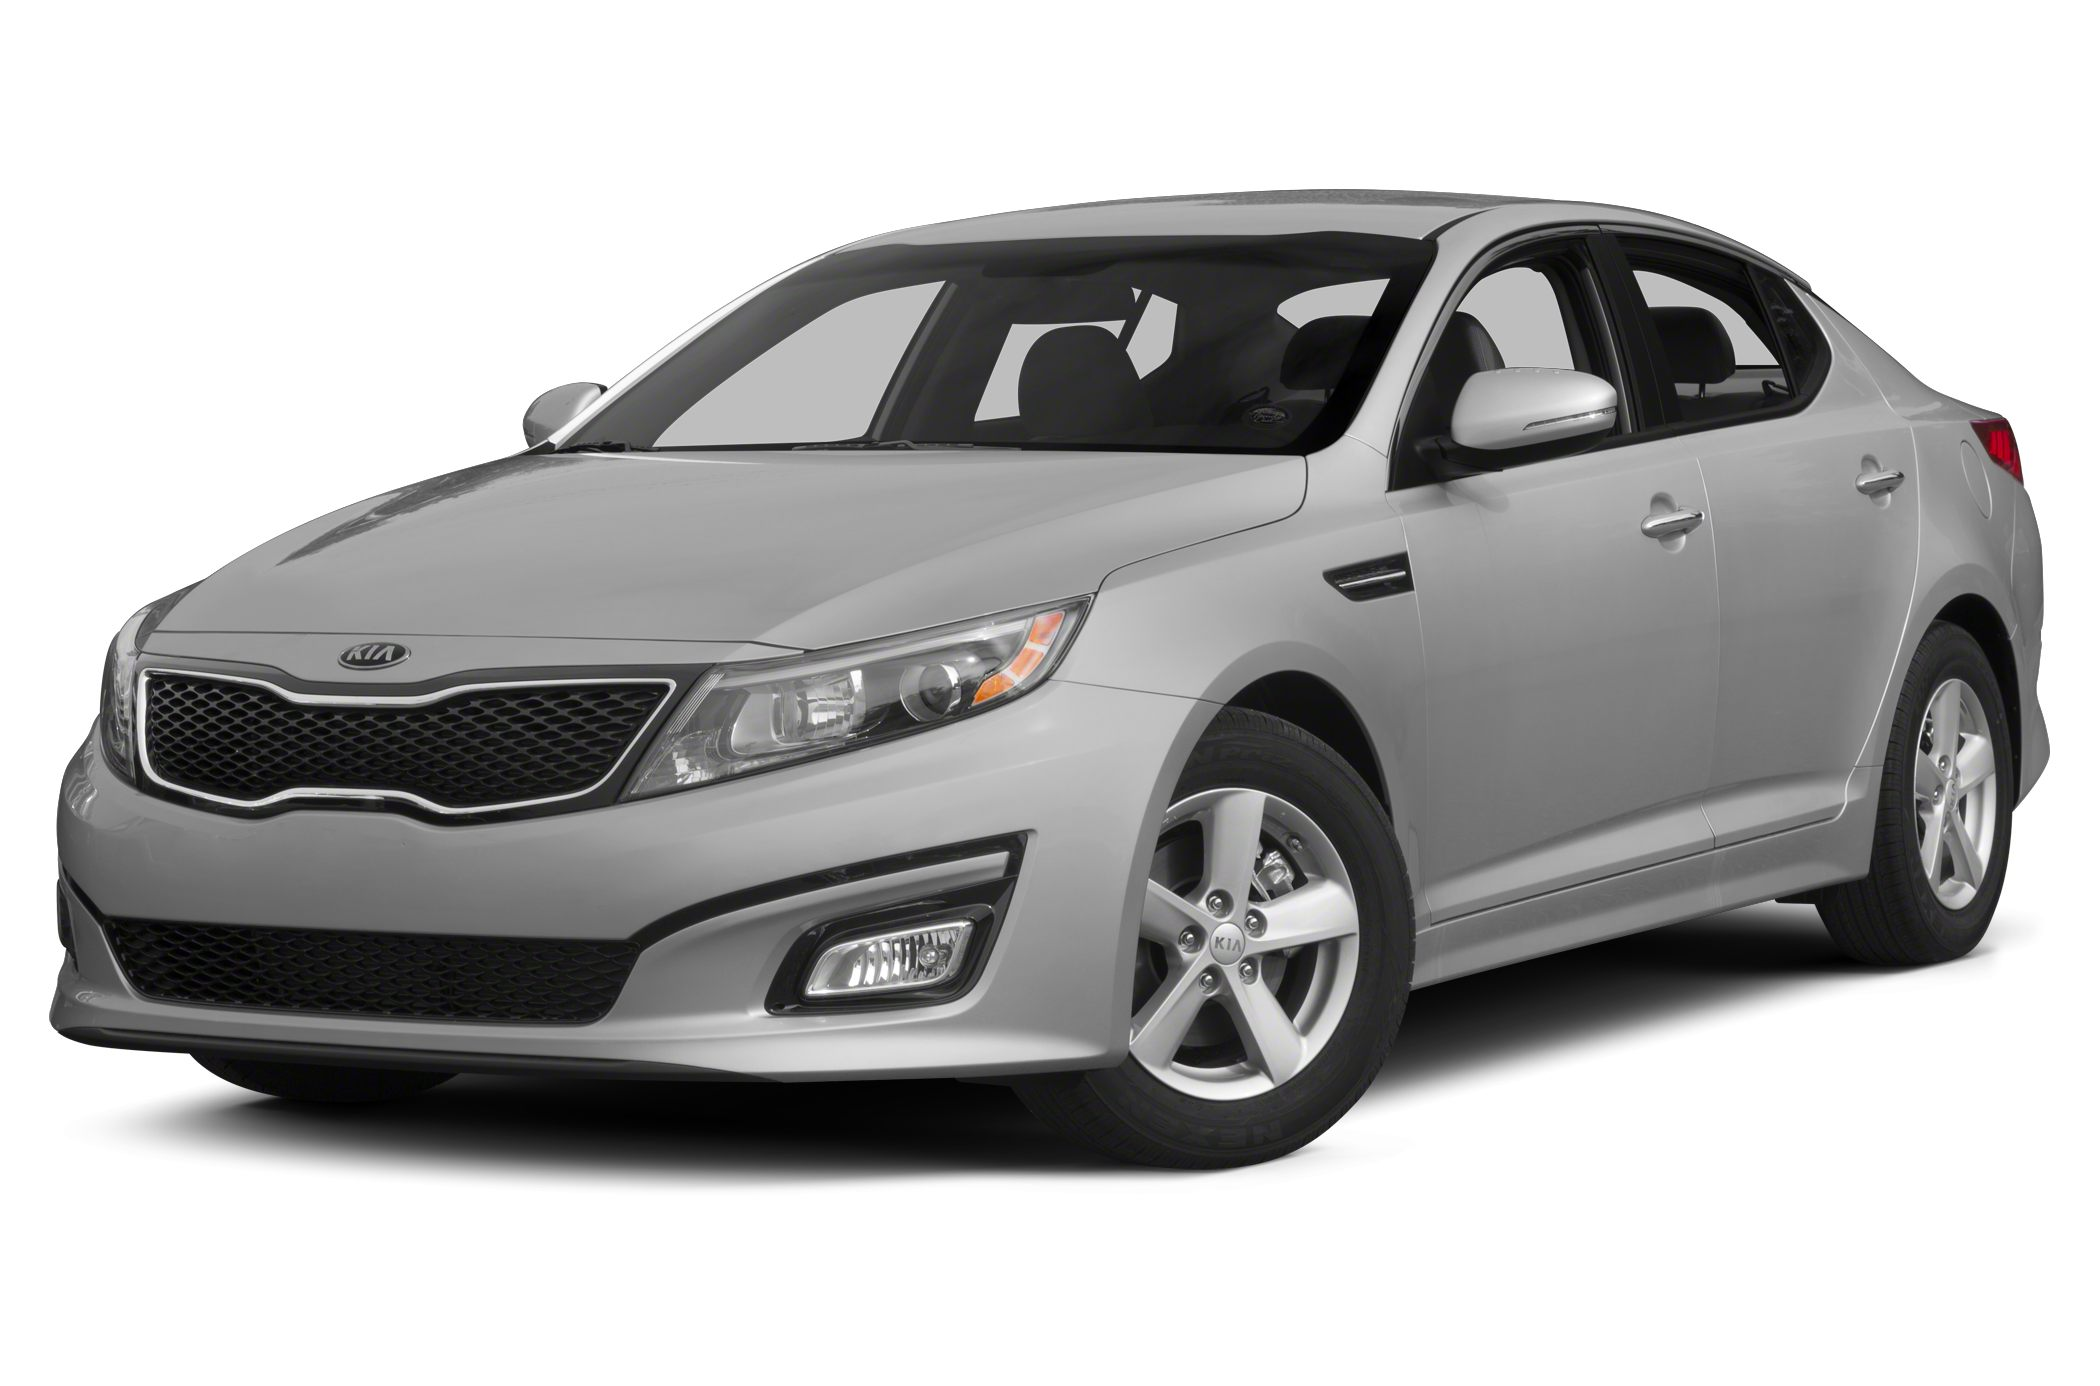 2015 Kia Optima LX Miles 84886Color Silver Stock K17444A VIN 5XXGM4A71FG436093